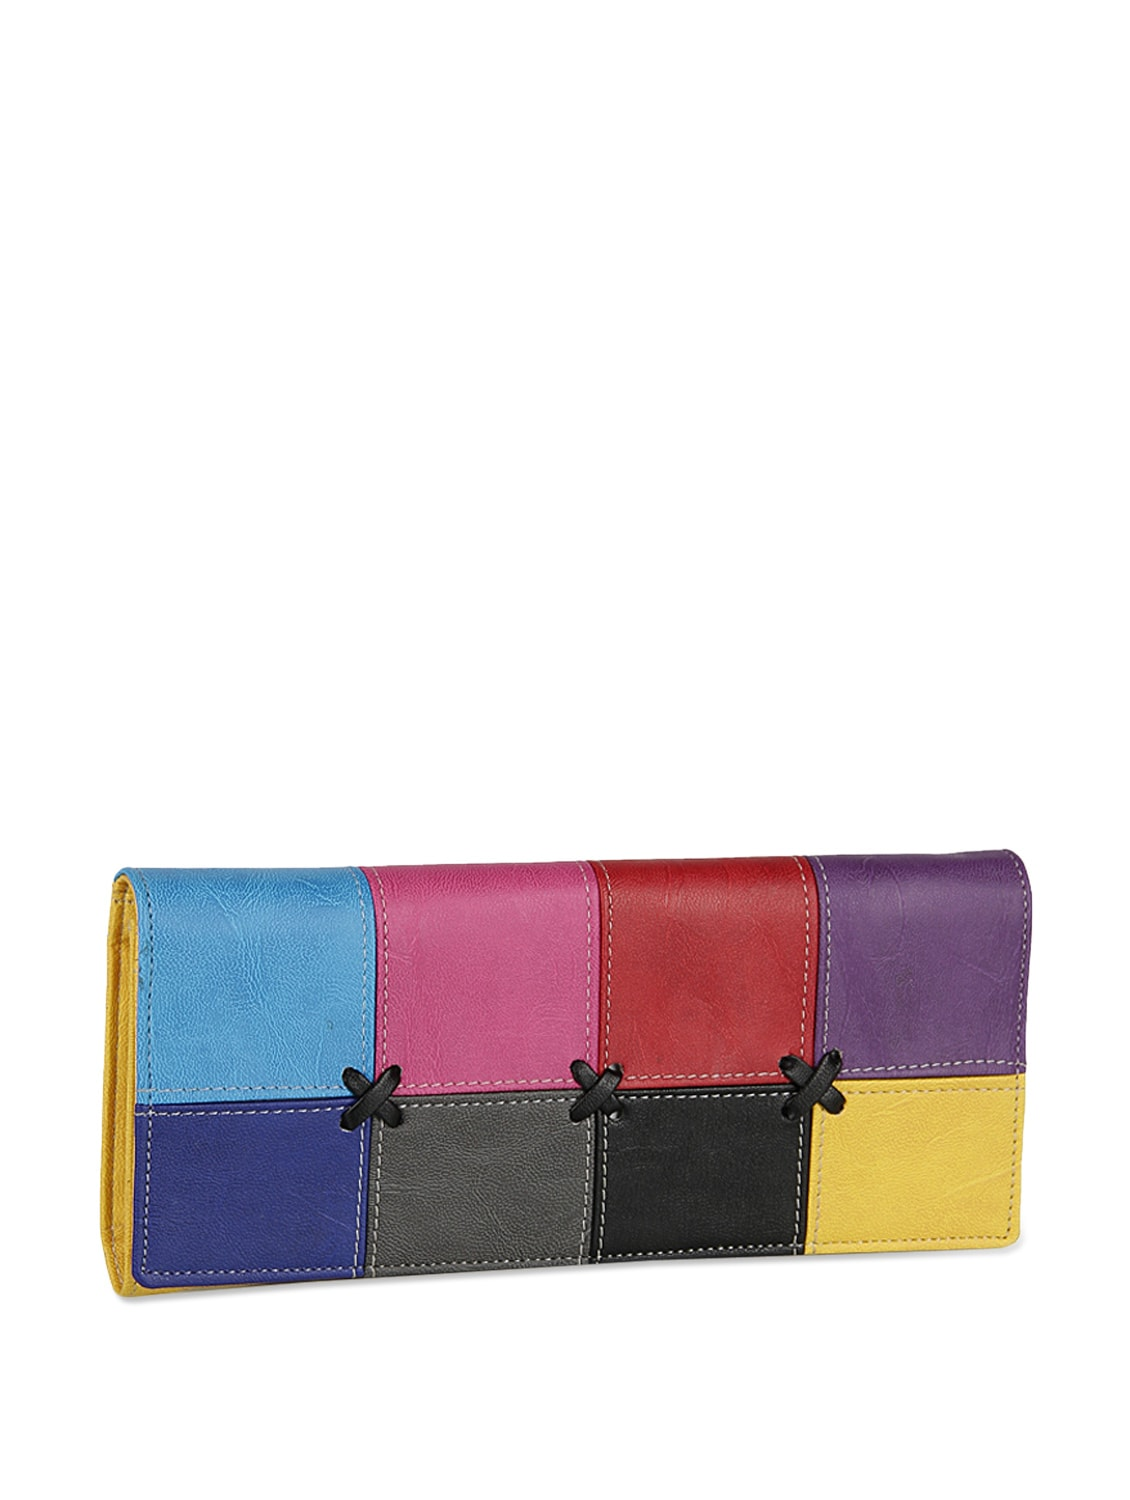 Multicoloured Patchwork Wallet - ALESSIA